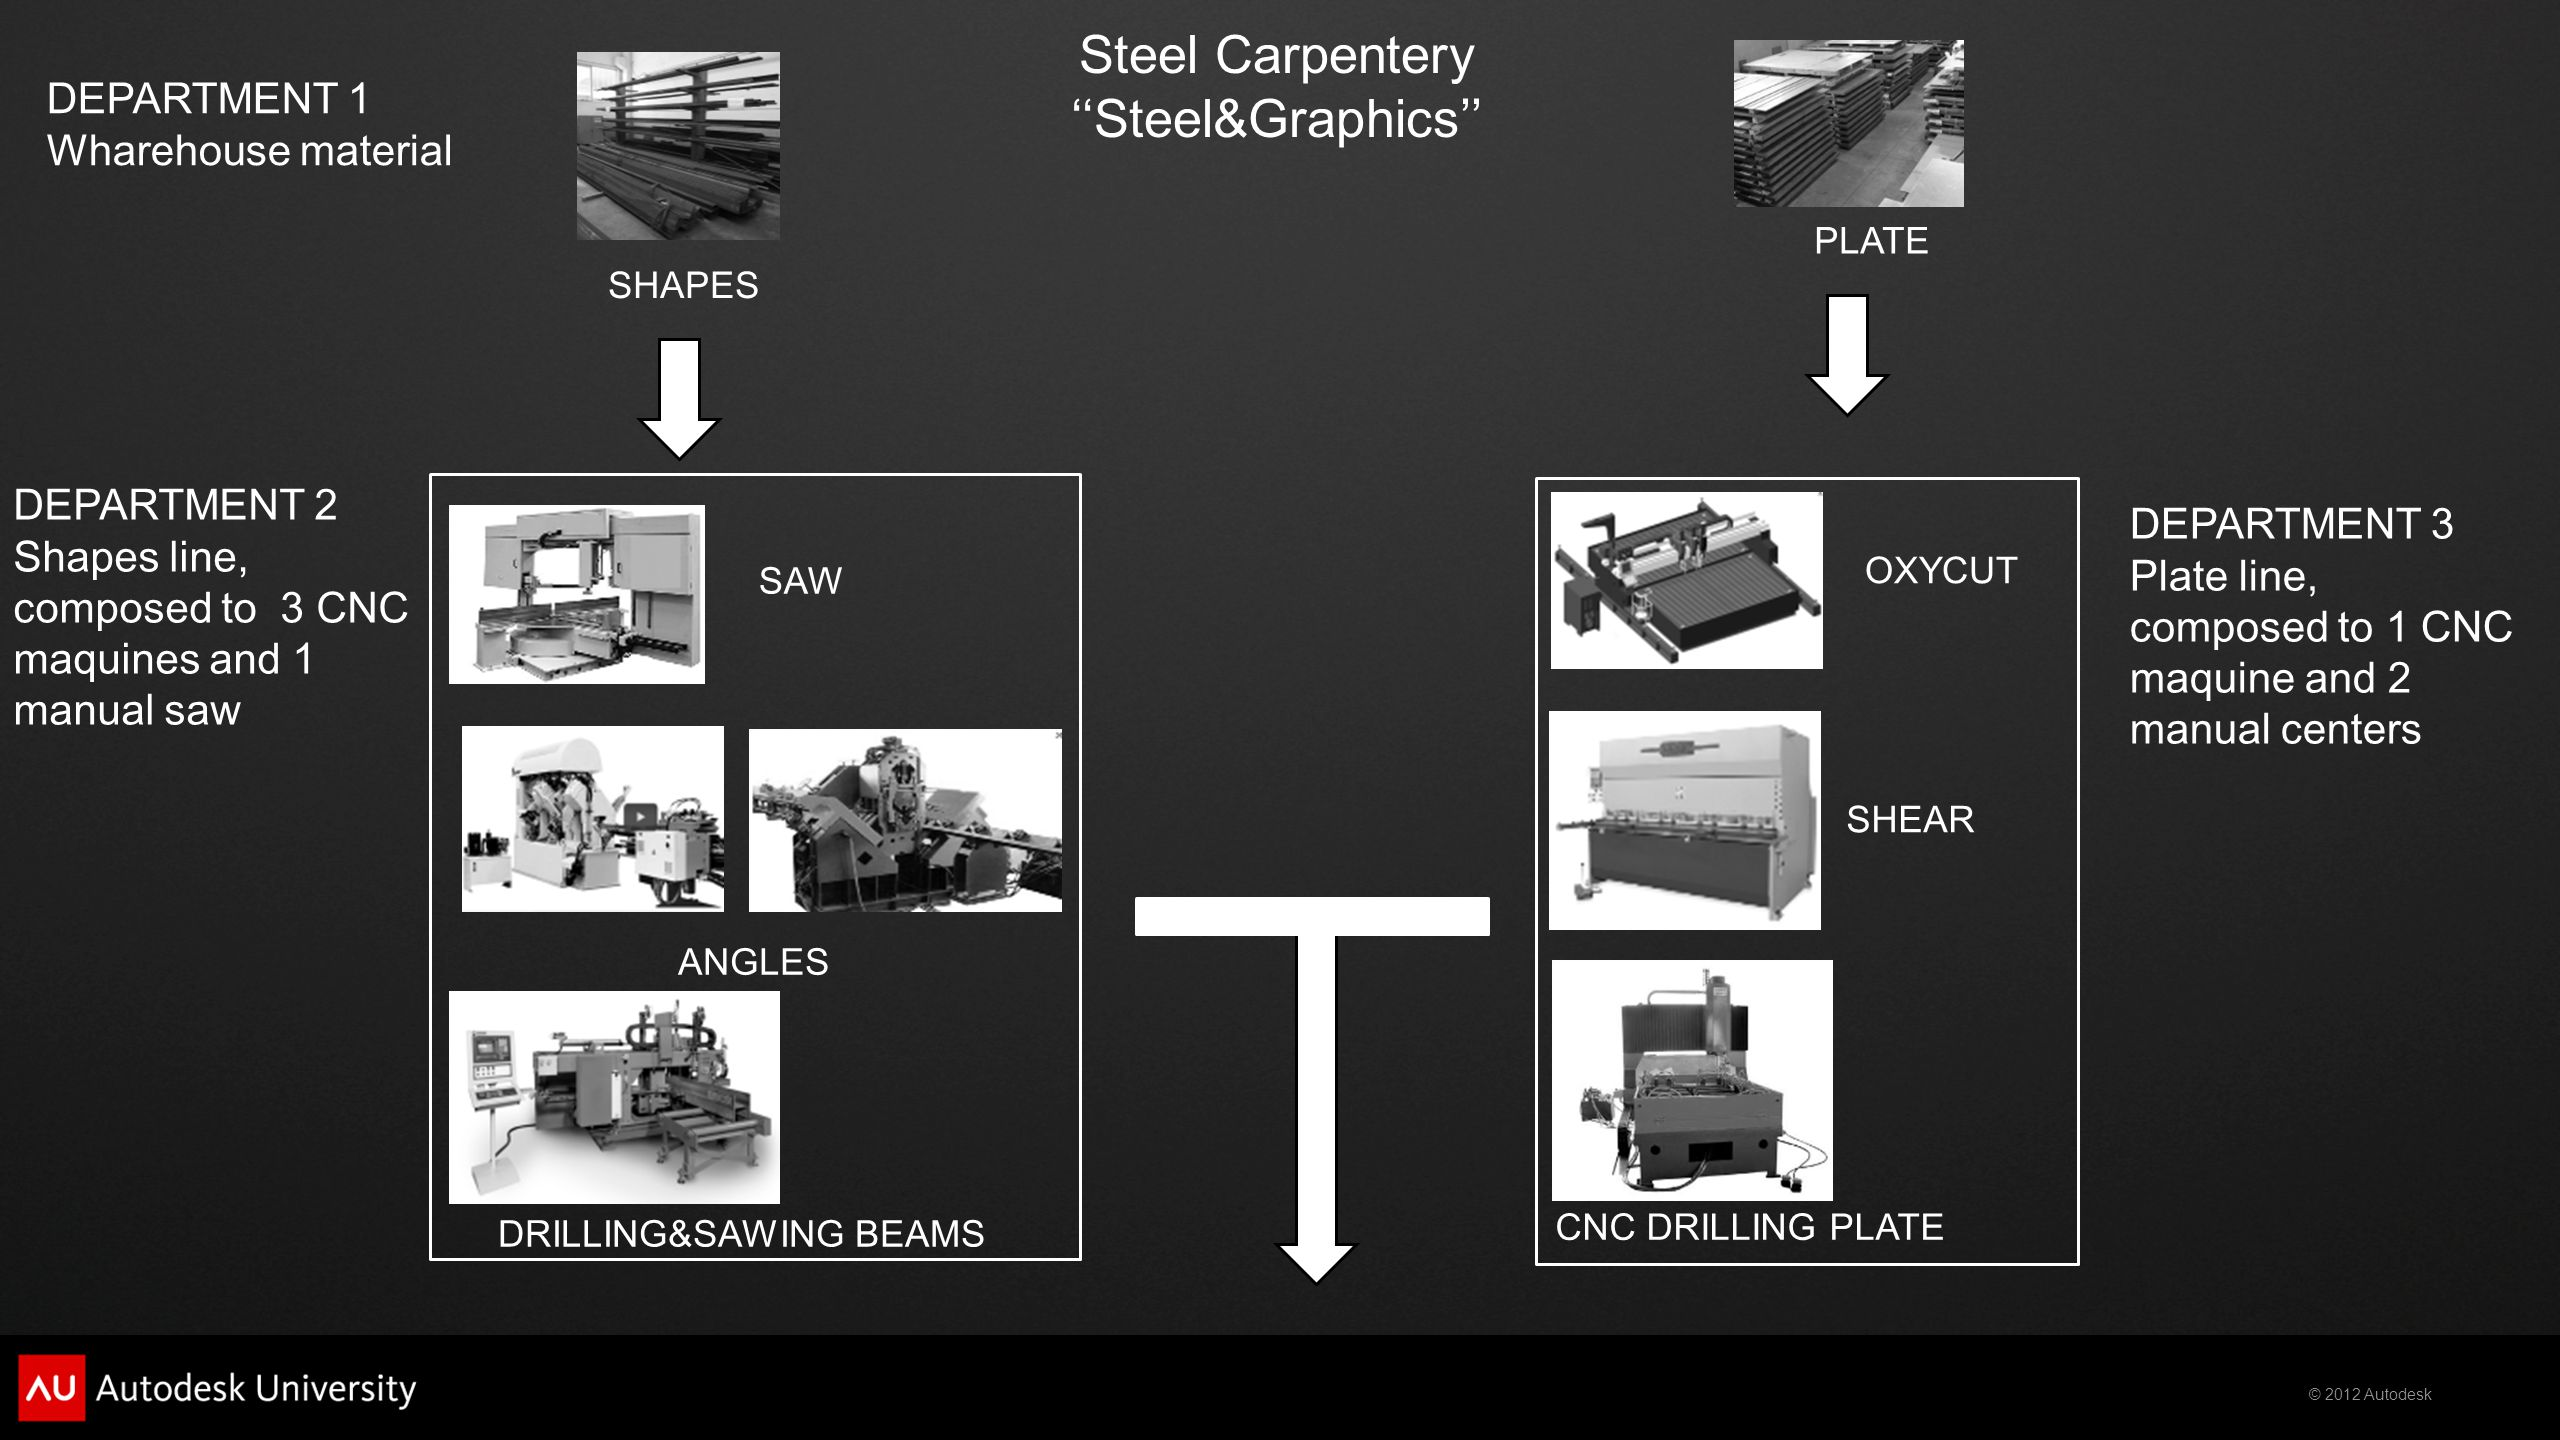 Steel Carpentery ''Steel&Graphics''